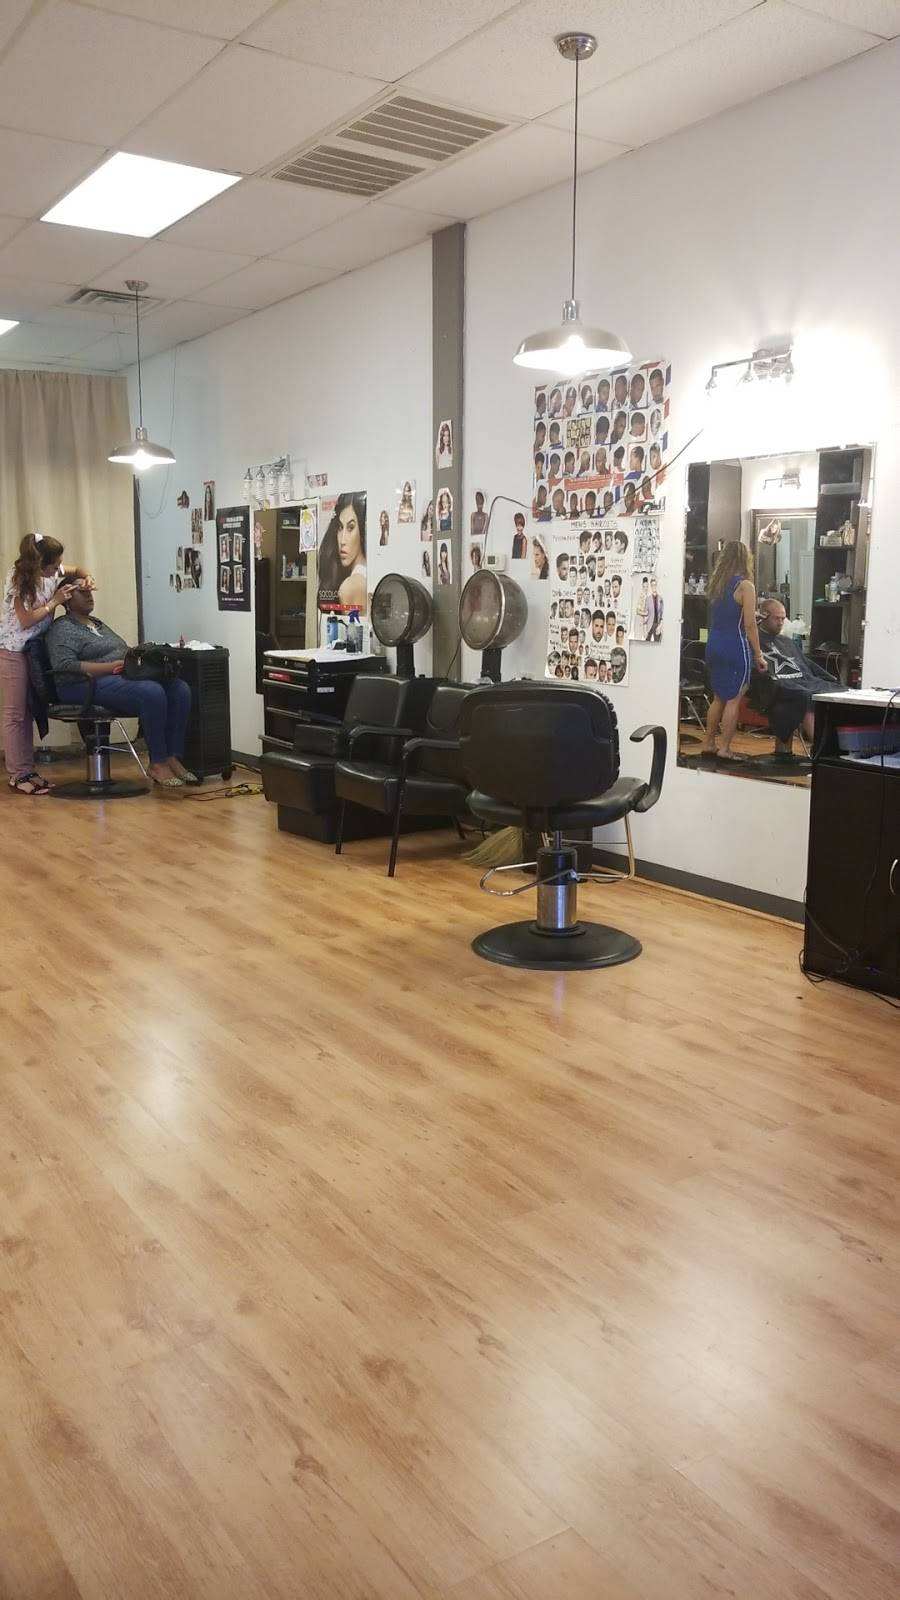 TC Haircuts - hair care  | Photo 1 of 10 | Address: 7816 Crowley Rd, Fort Worth, TX 76134, USA | Phone: (817) 293-1432